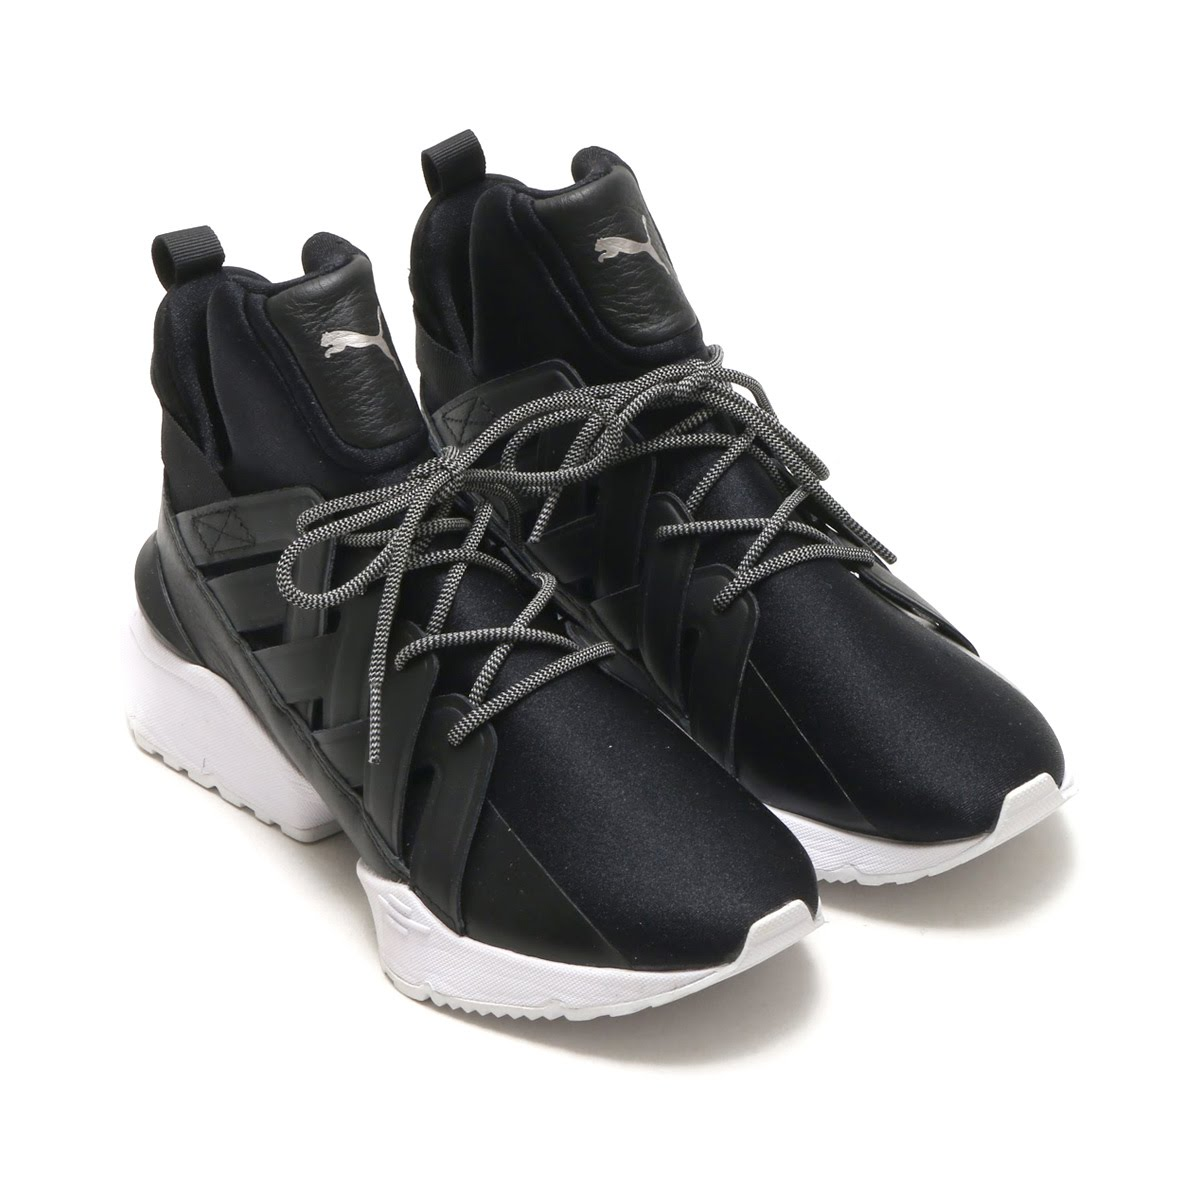 7816fdaf843 PUMA MUSE ECHO SATIN EP WOMENS (Puma Muses echo satin EP women) PUMA BLACK  18SP-I